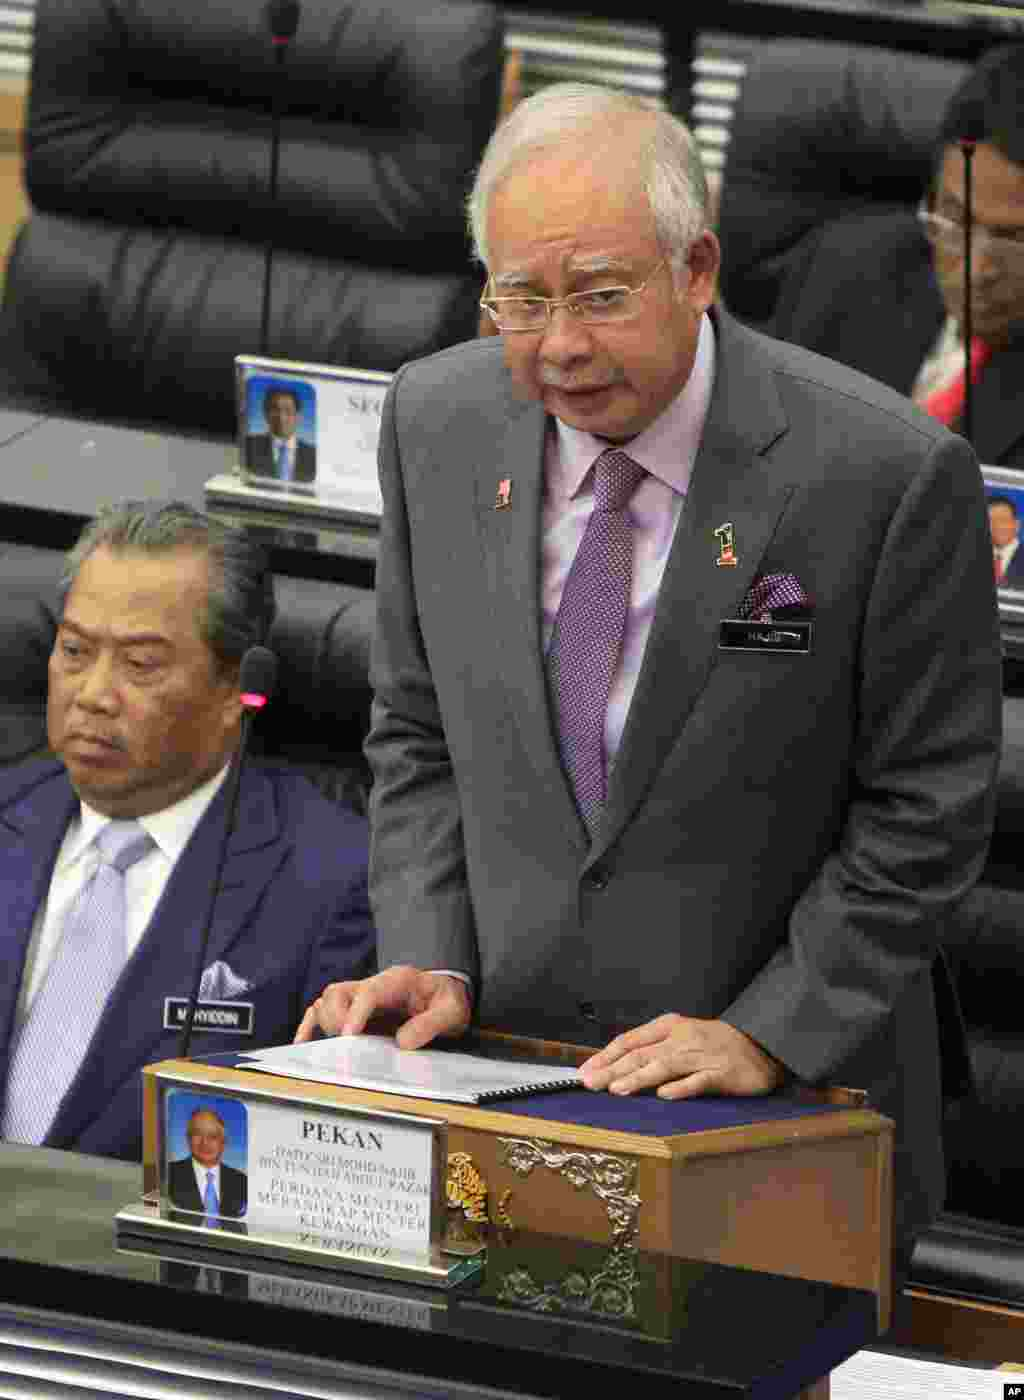 Malaysian Prime Minister Najib Razak tables an emergency motion to condemn the downing of Malaysia Airlines Flight 17 in eastern Ukraine, at Parliament House in Kuala Lumpur, July 23, 2014.